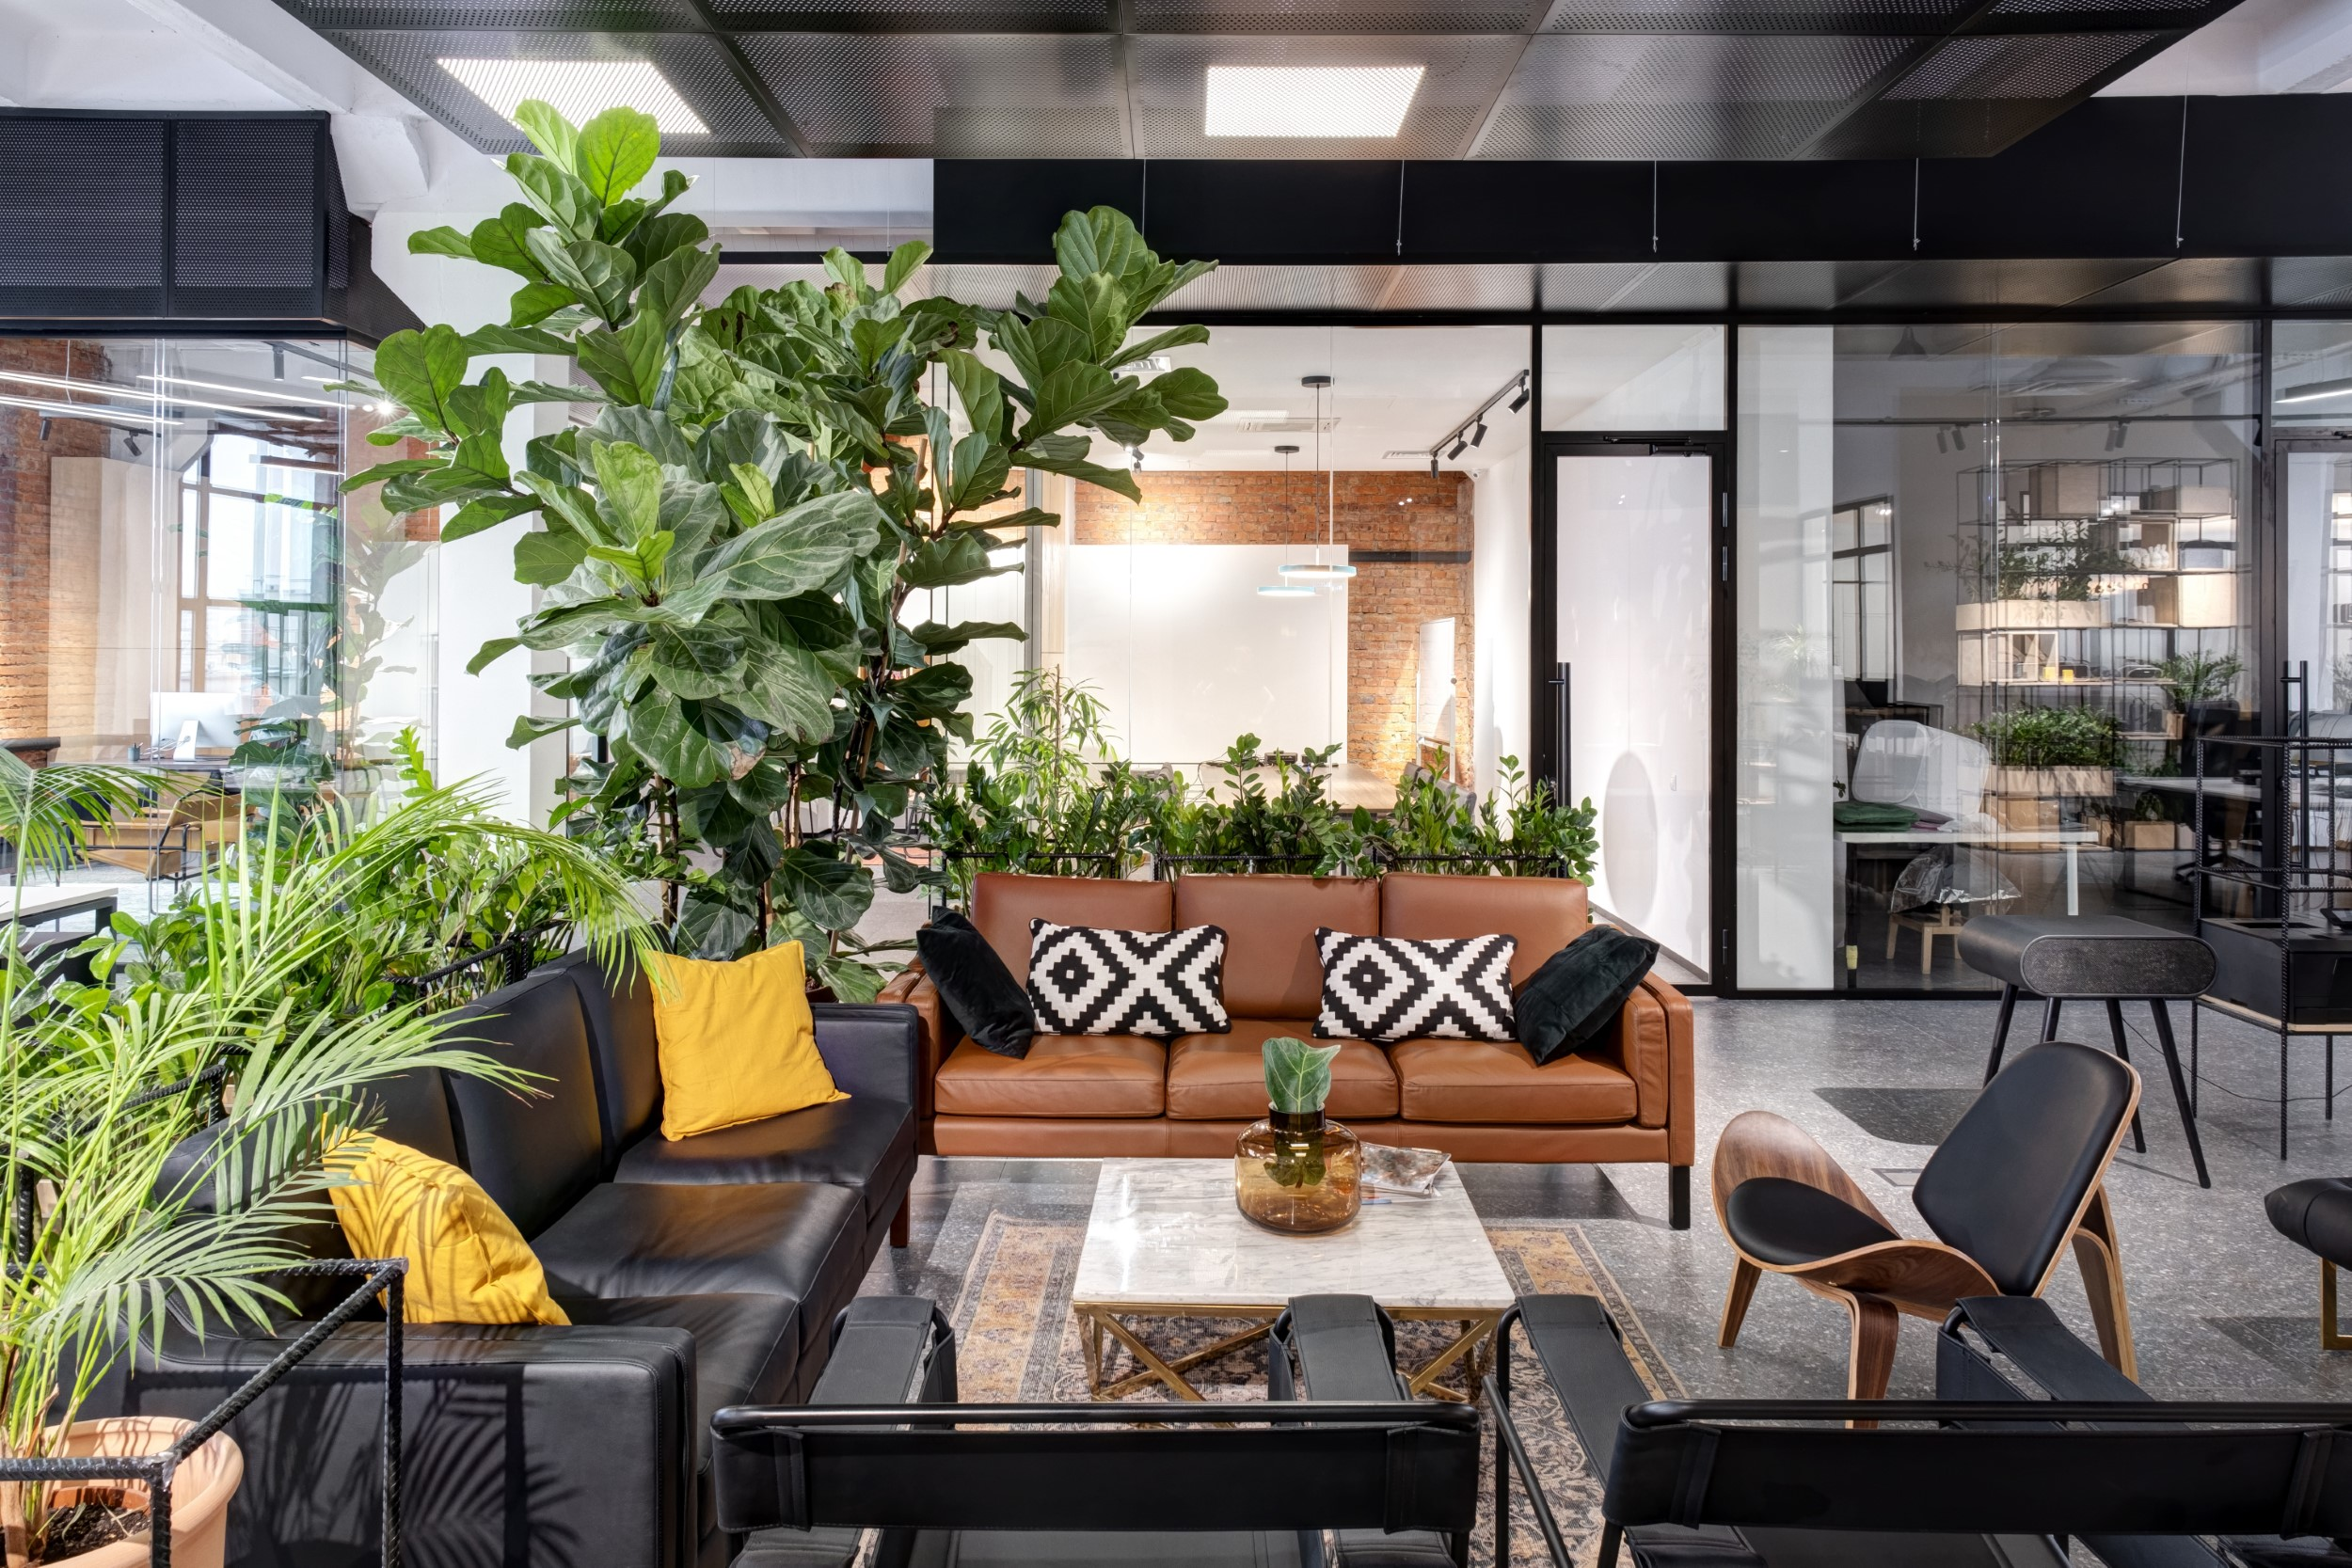 modern open space office interior with asitting area in the center among green spaces